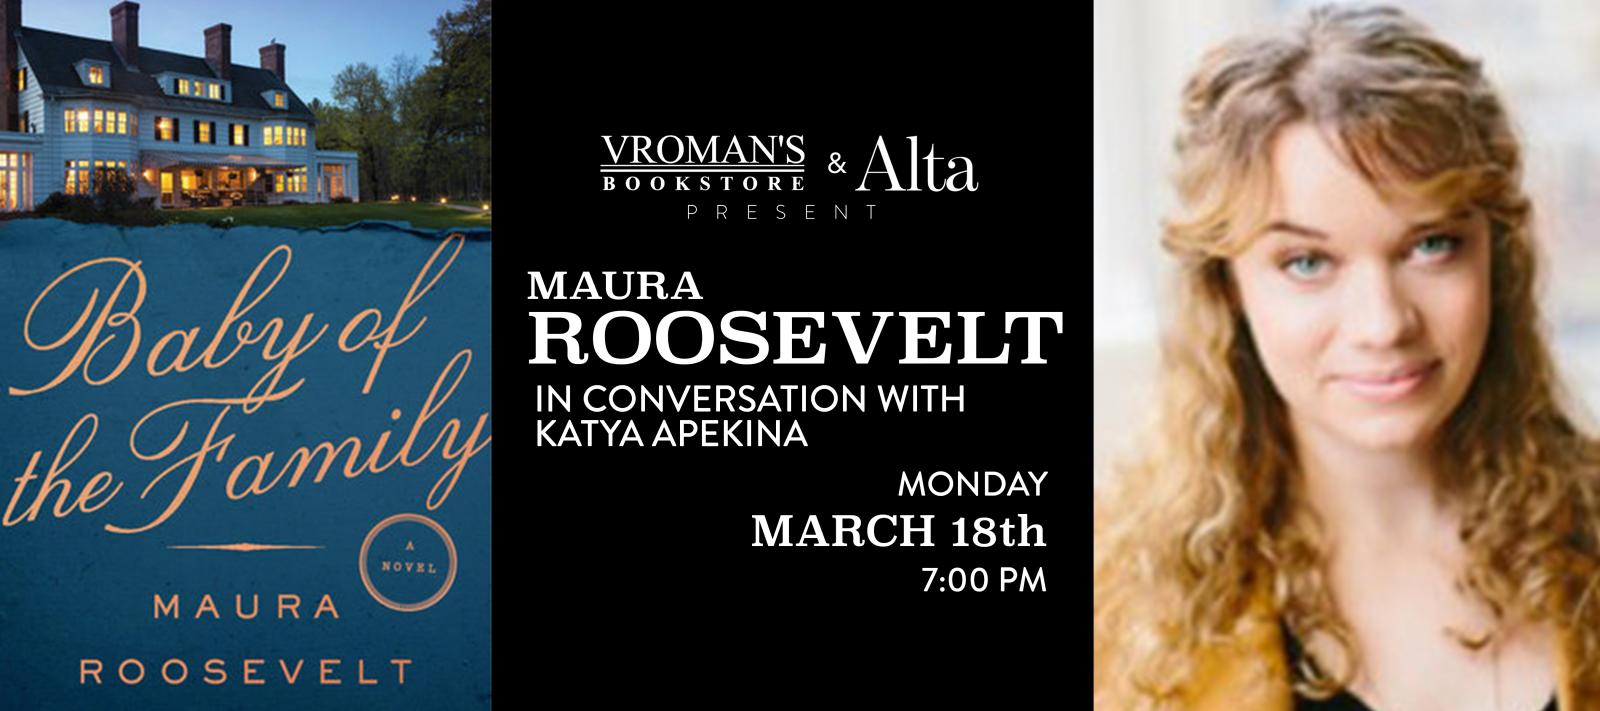 Maura Roosevelt, in conversation with Katya Apekina, Monday March 18th at 7pm